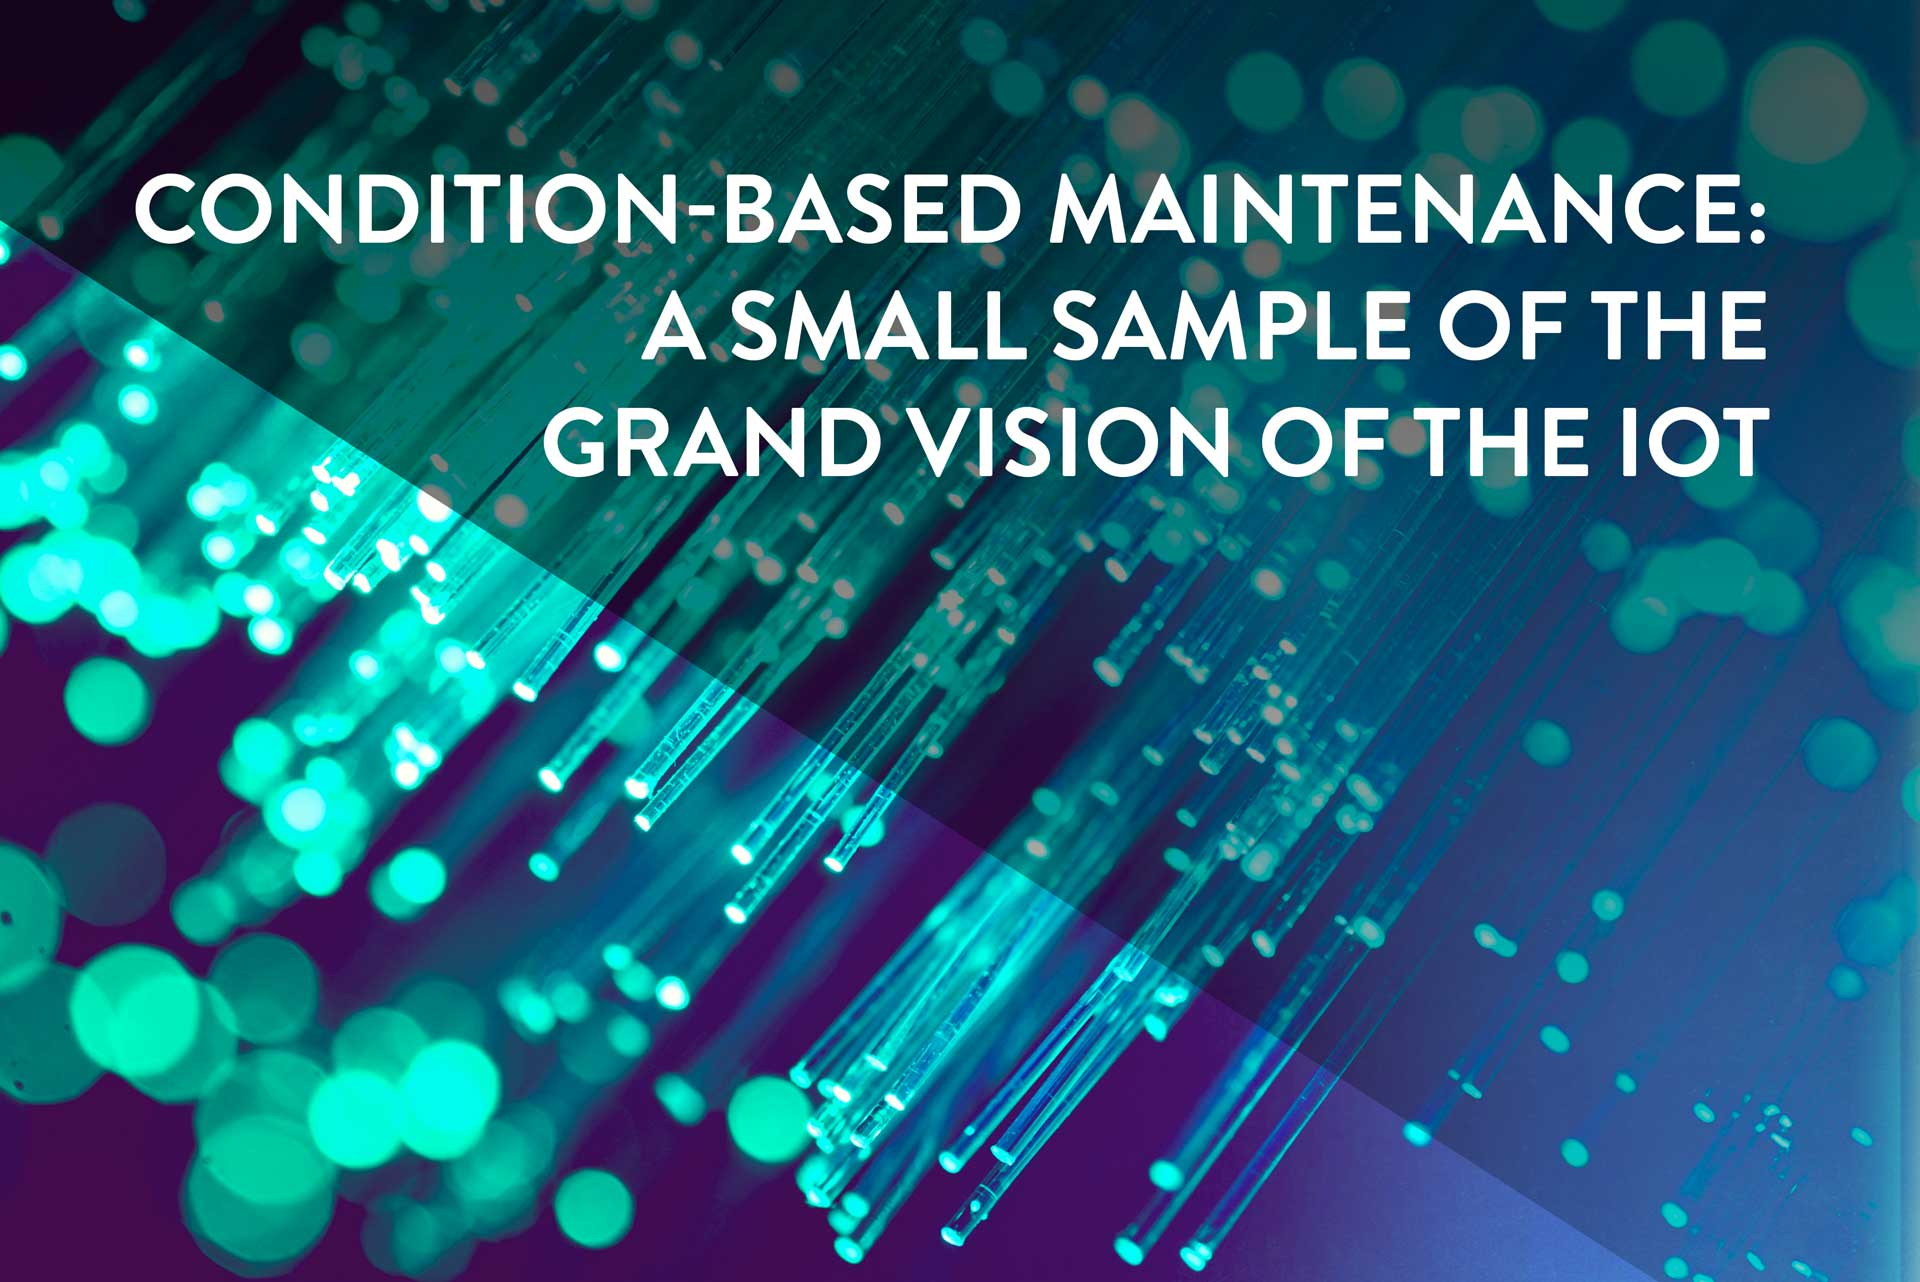 Fleet Management Software >> Condition-Based Maintenance: A Small Sample of the Grand Vision of the IoT - Ingenu